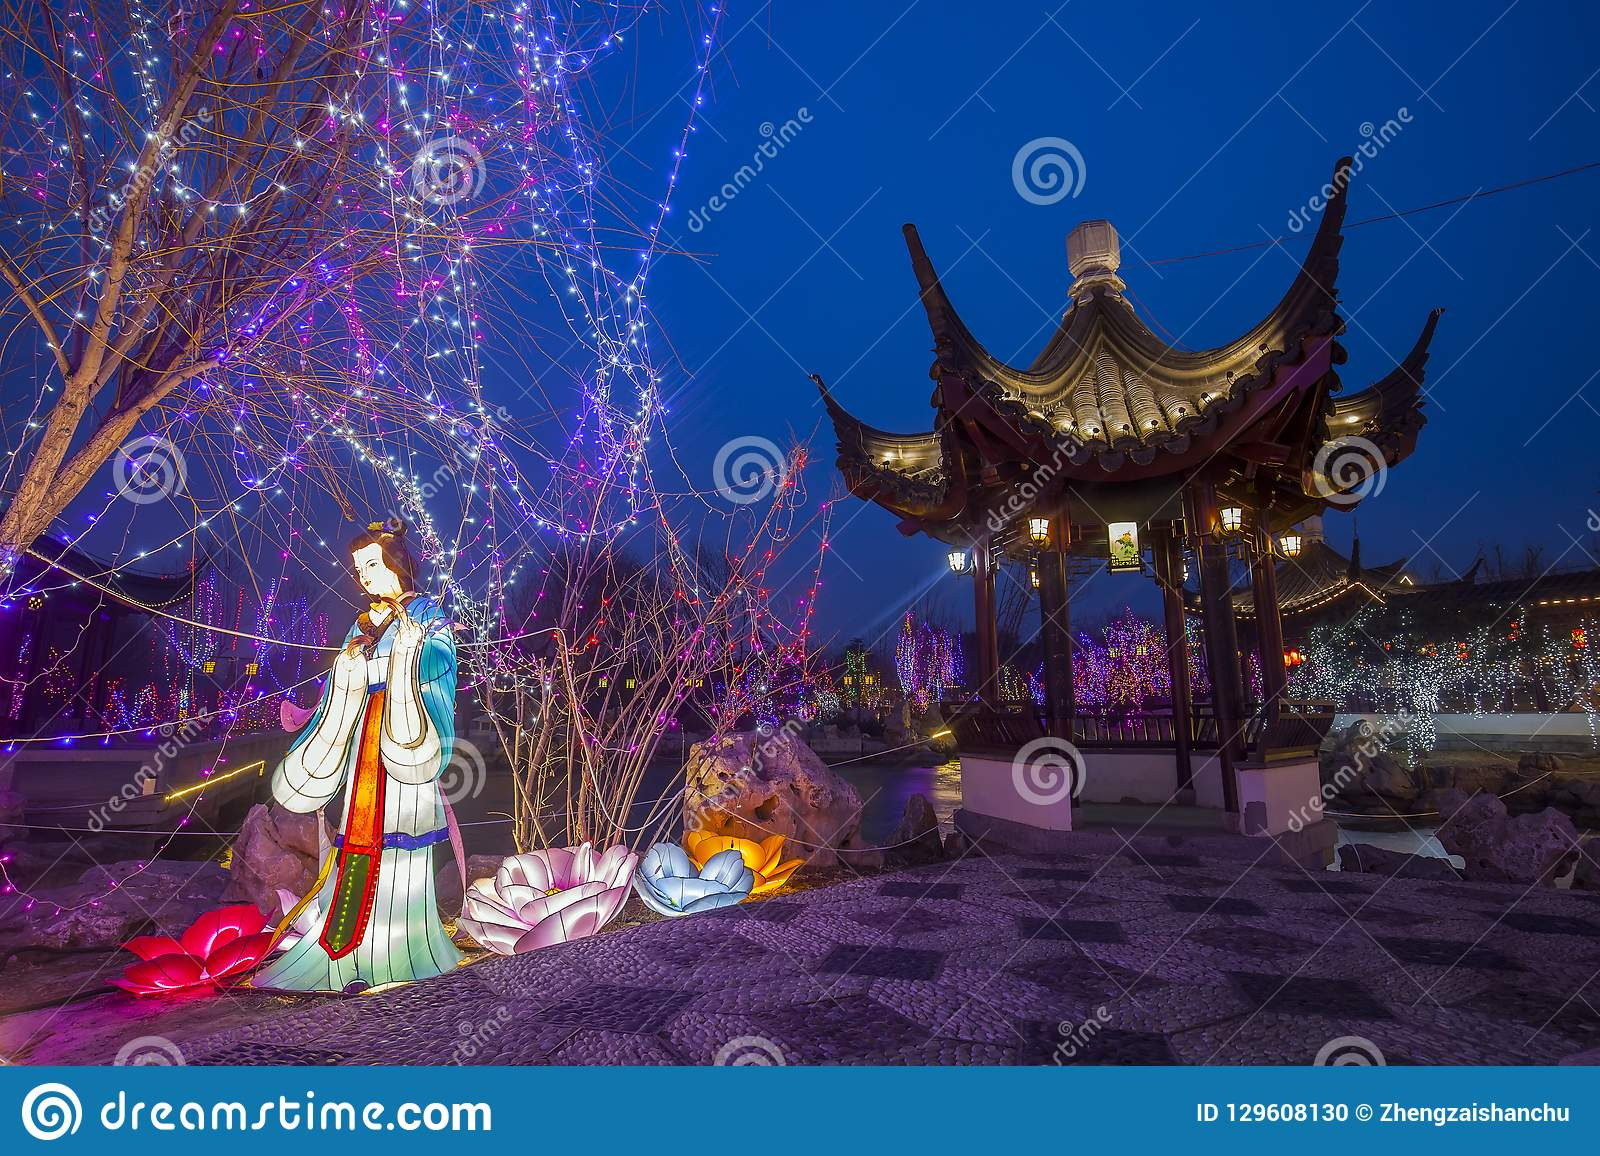 Chinese traditional buildings at night